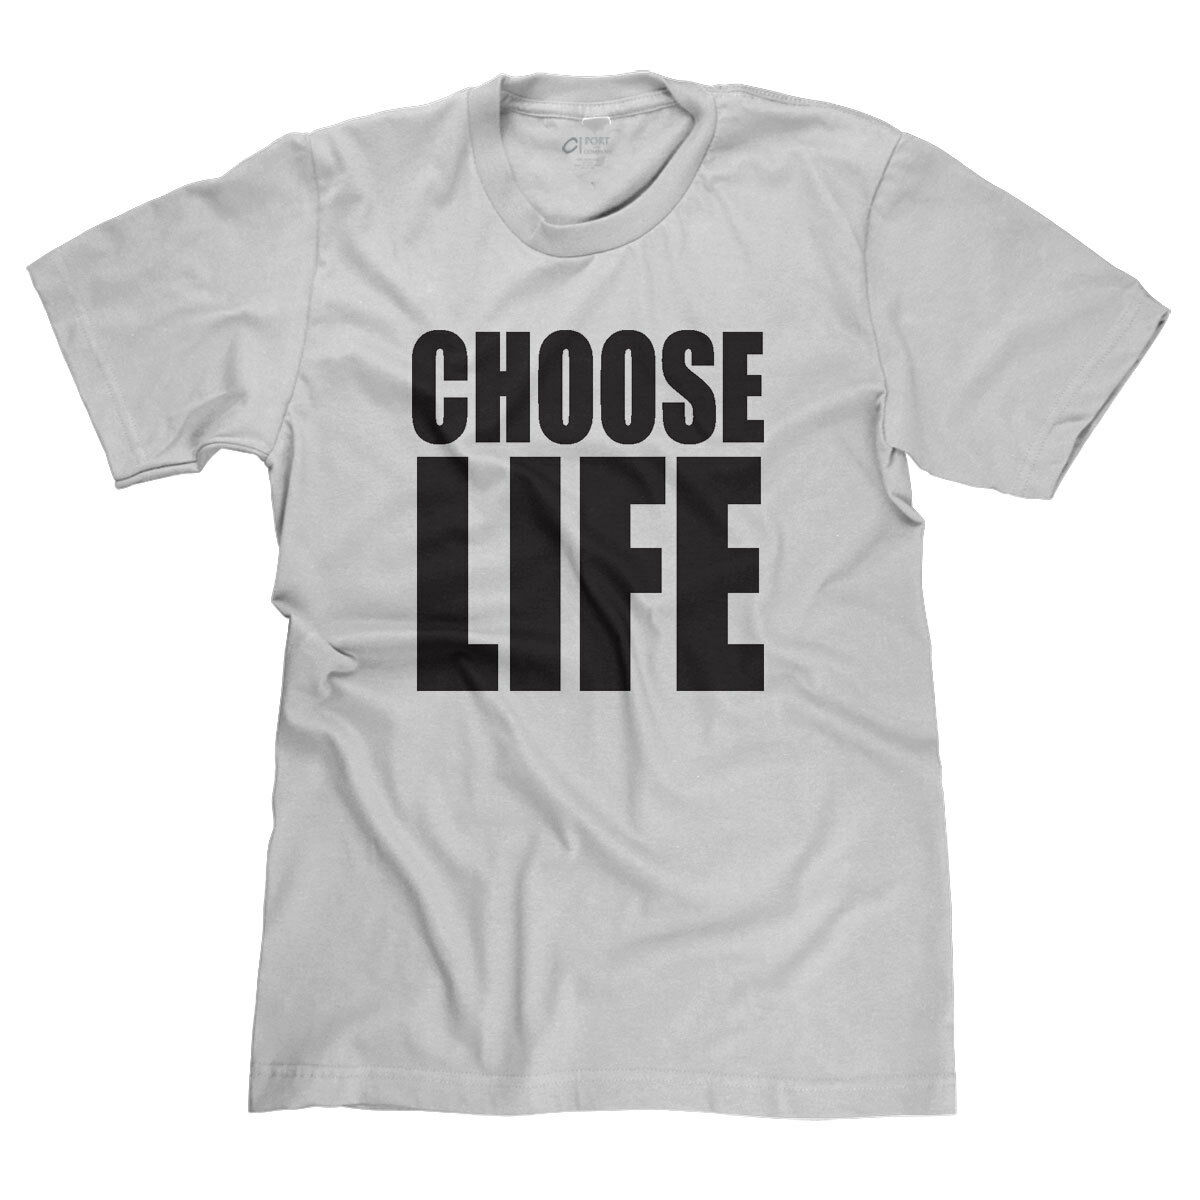 CHOOSE LIFE WHAM WAKE ME UP BEFORE YOU GO-GO 80s MUSIC VIDEO PARODY T-SHIRT TEE Fashion Style Men Tee,100% Cotton Classic tee image